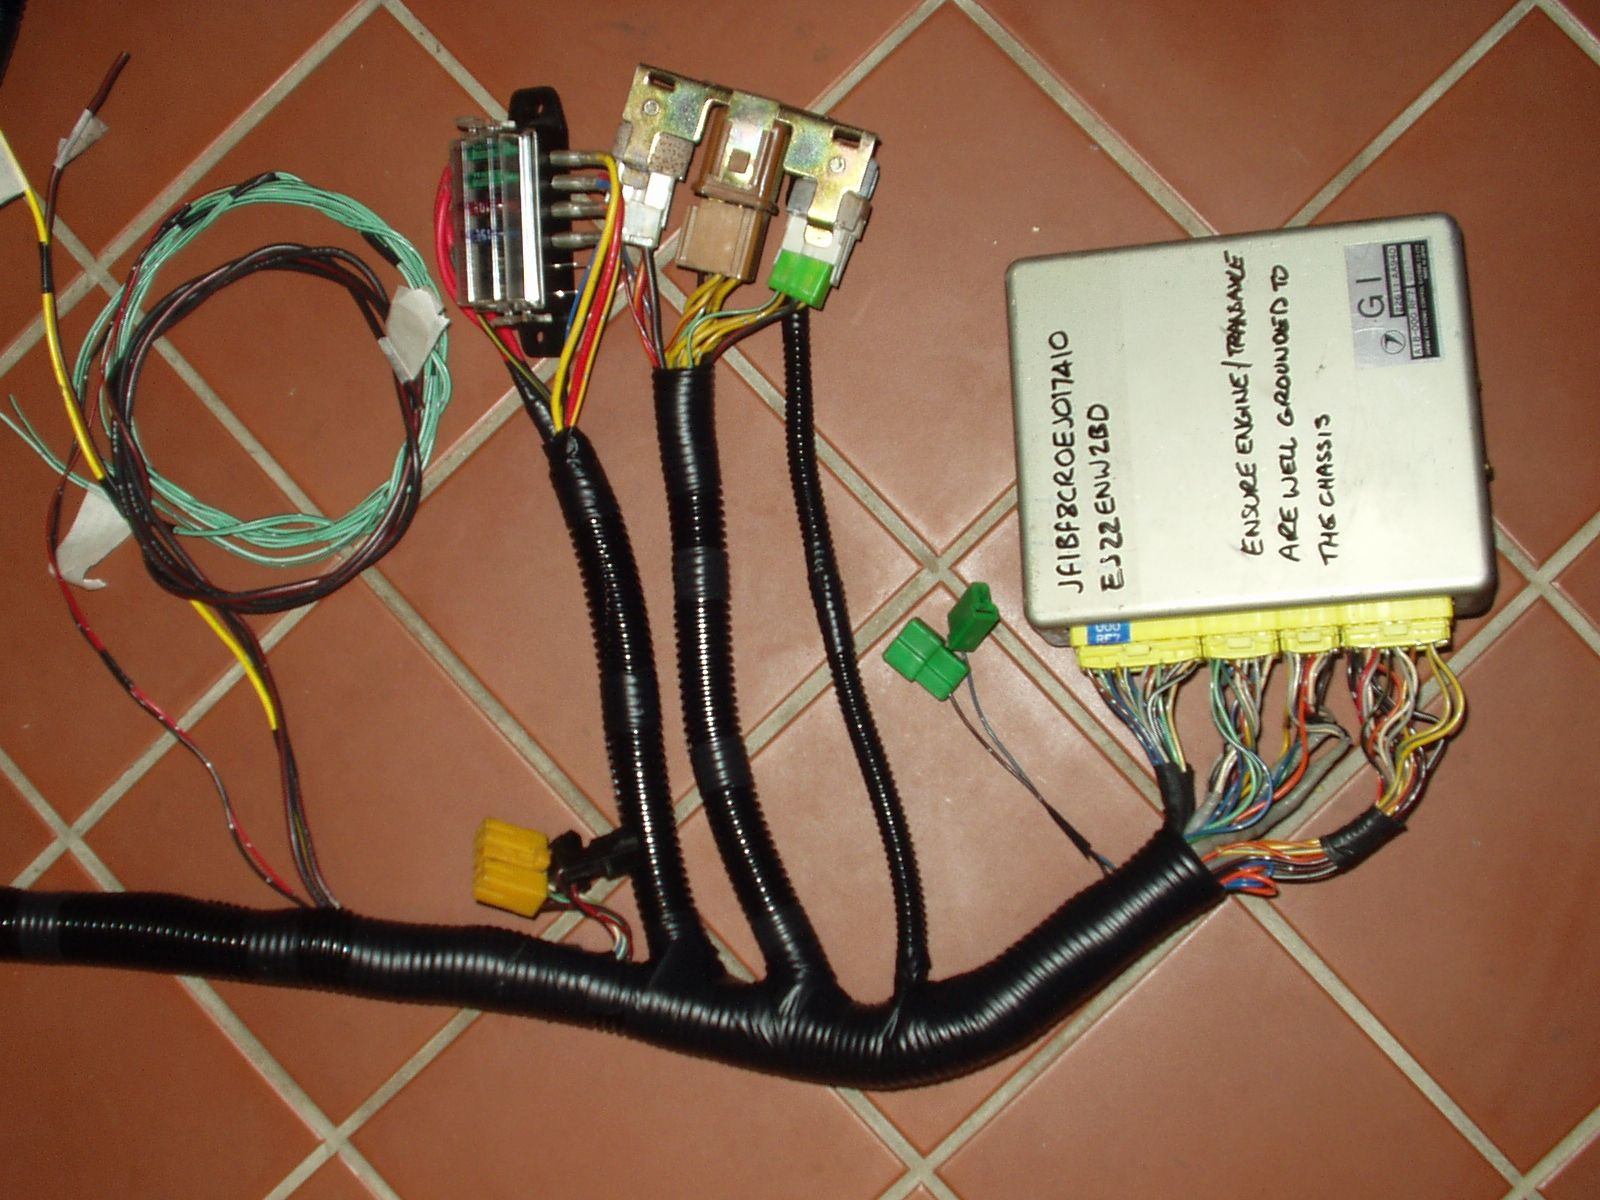 Subaru Wiring Harness Change Your Idea With Diagram Design Engine A After Rjes Have Done Their For Sand Rail Radio